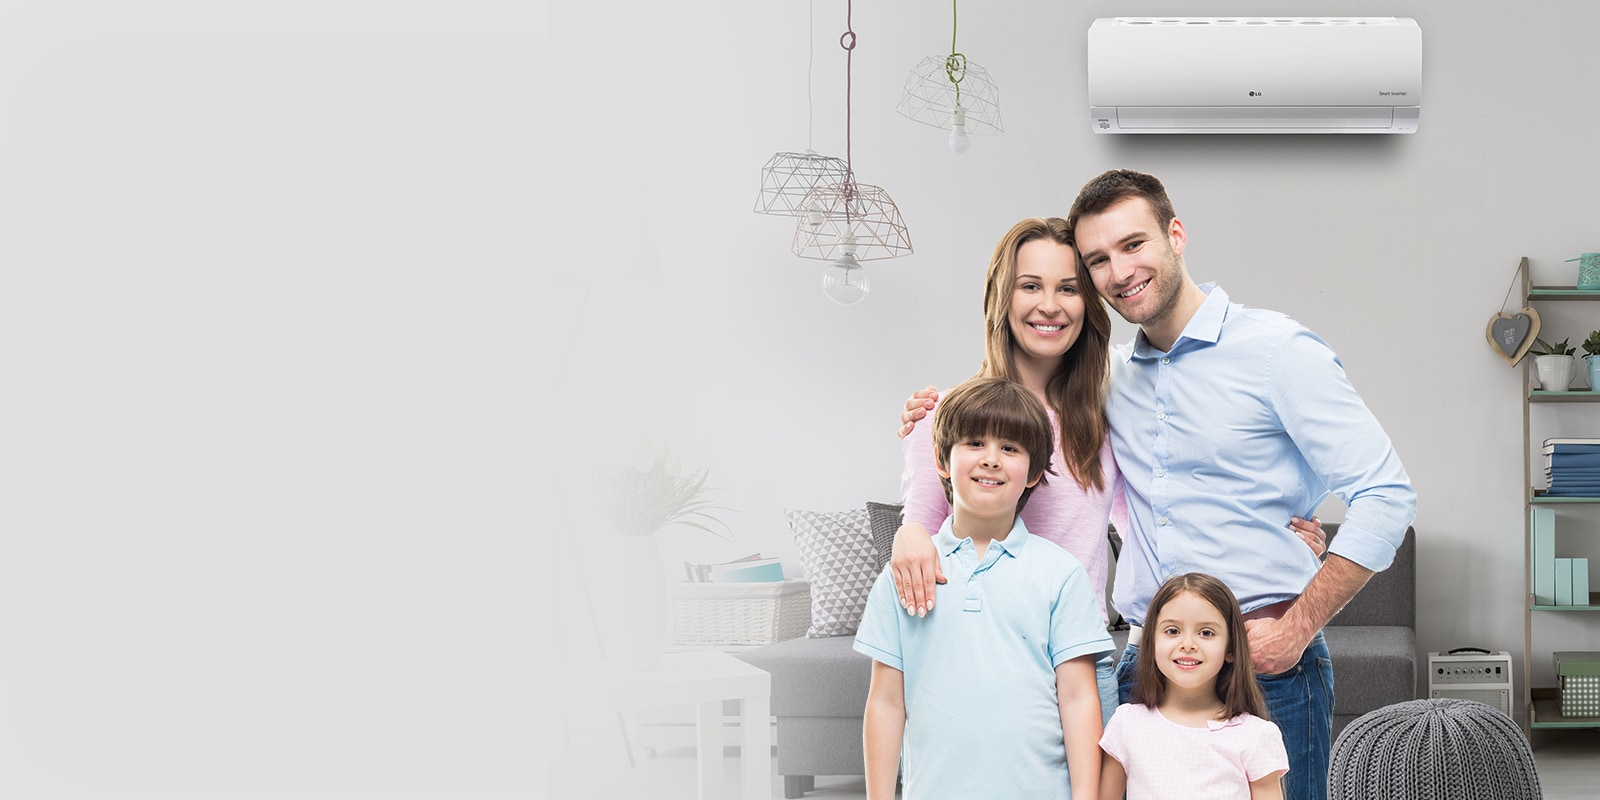 Home Water Filter >> Home Air Conditioning: Smarter, Energy Saving Cooling | LG Australia